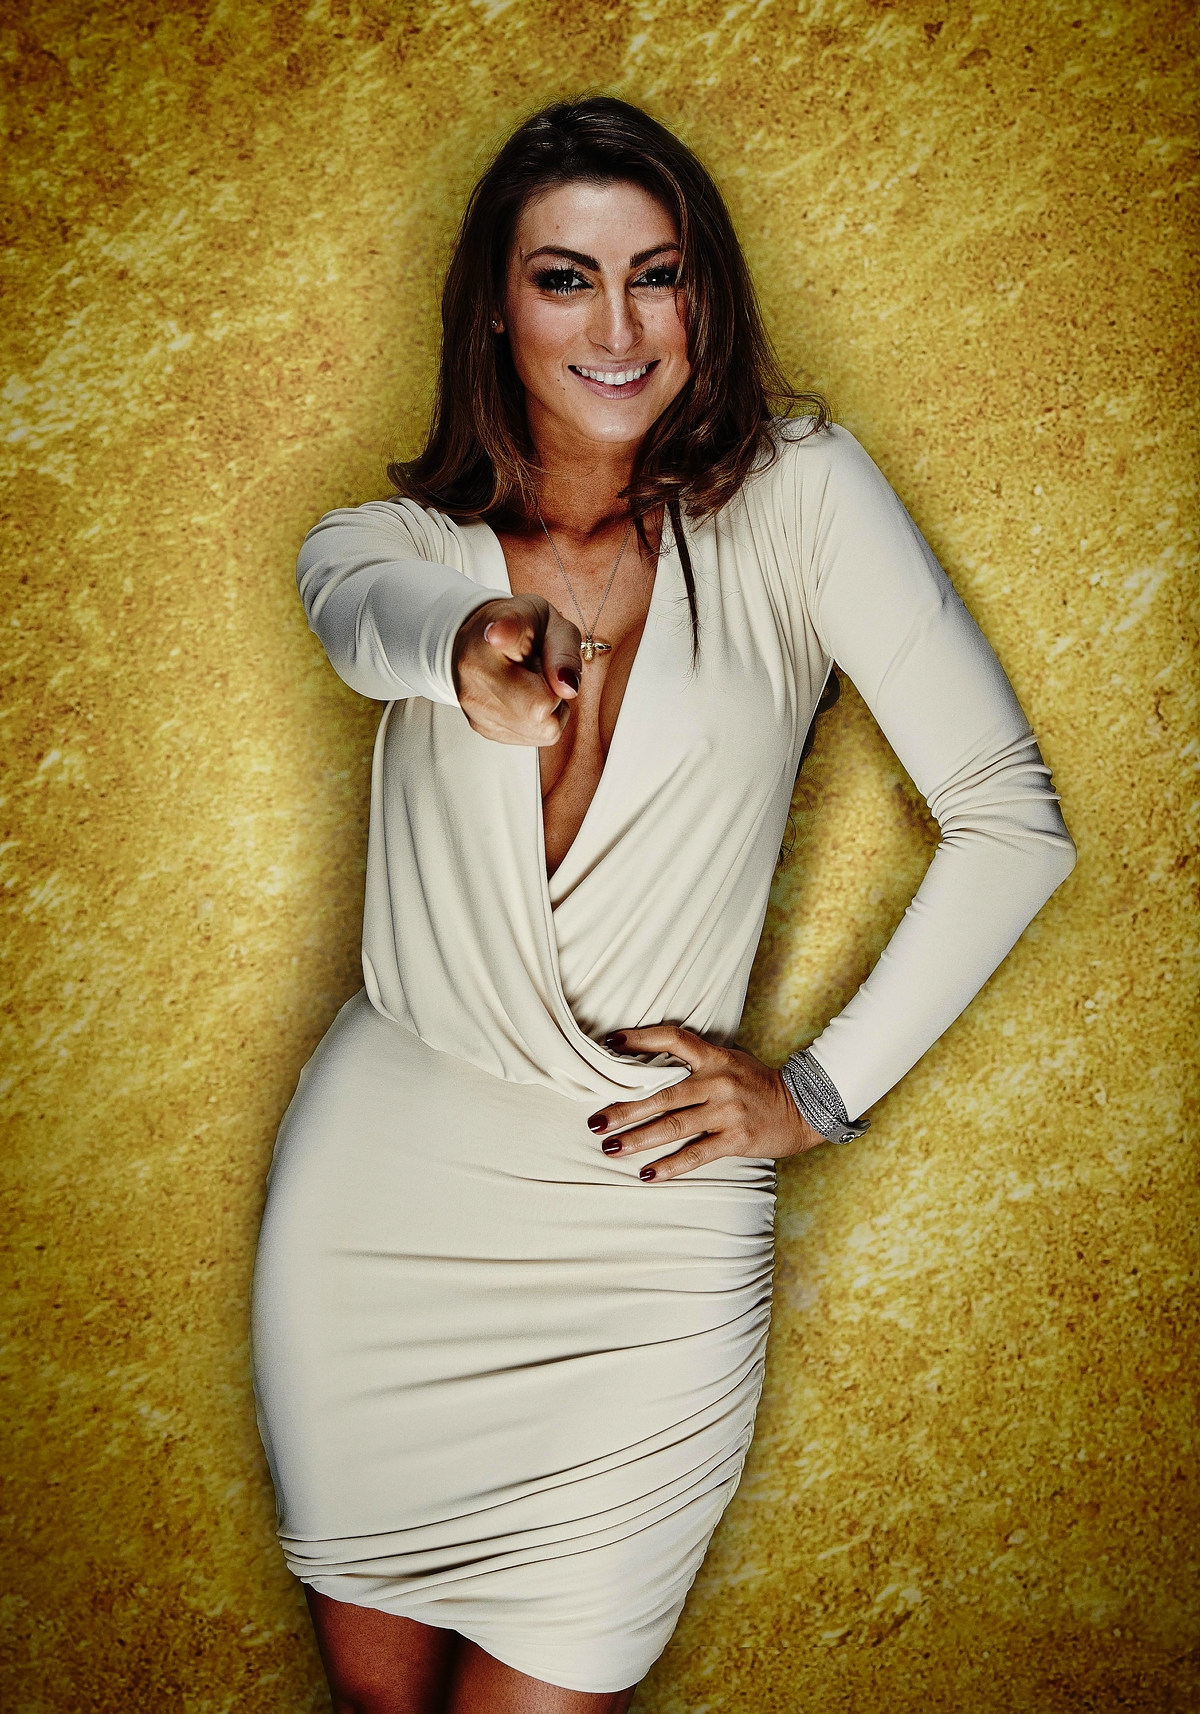 St Albans' Luisa Zissman joins Big Brother team as panellist and presenter